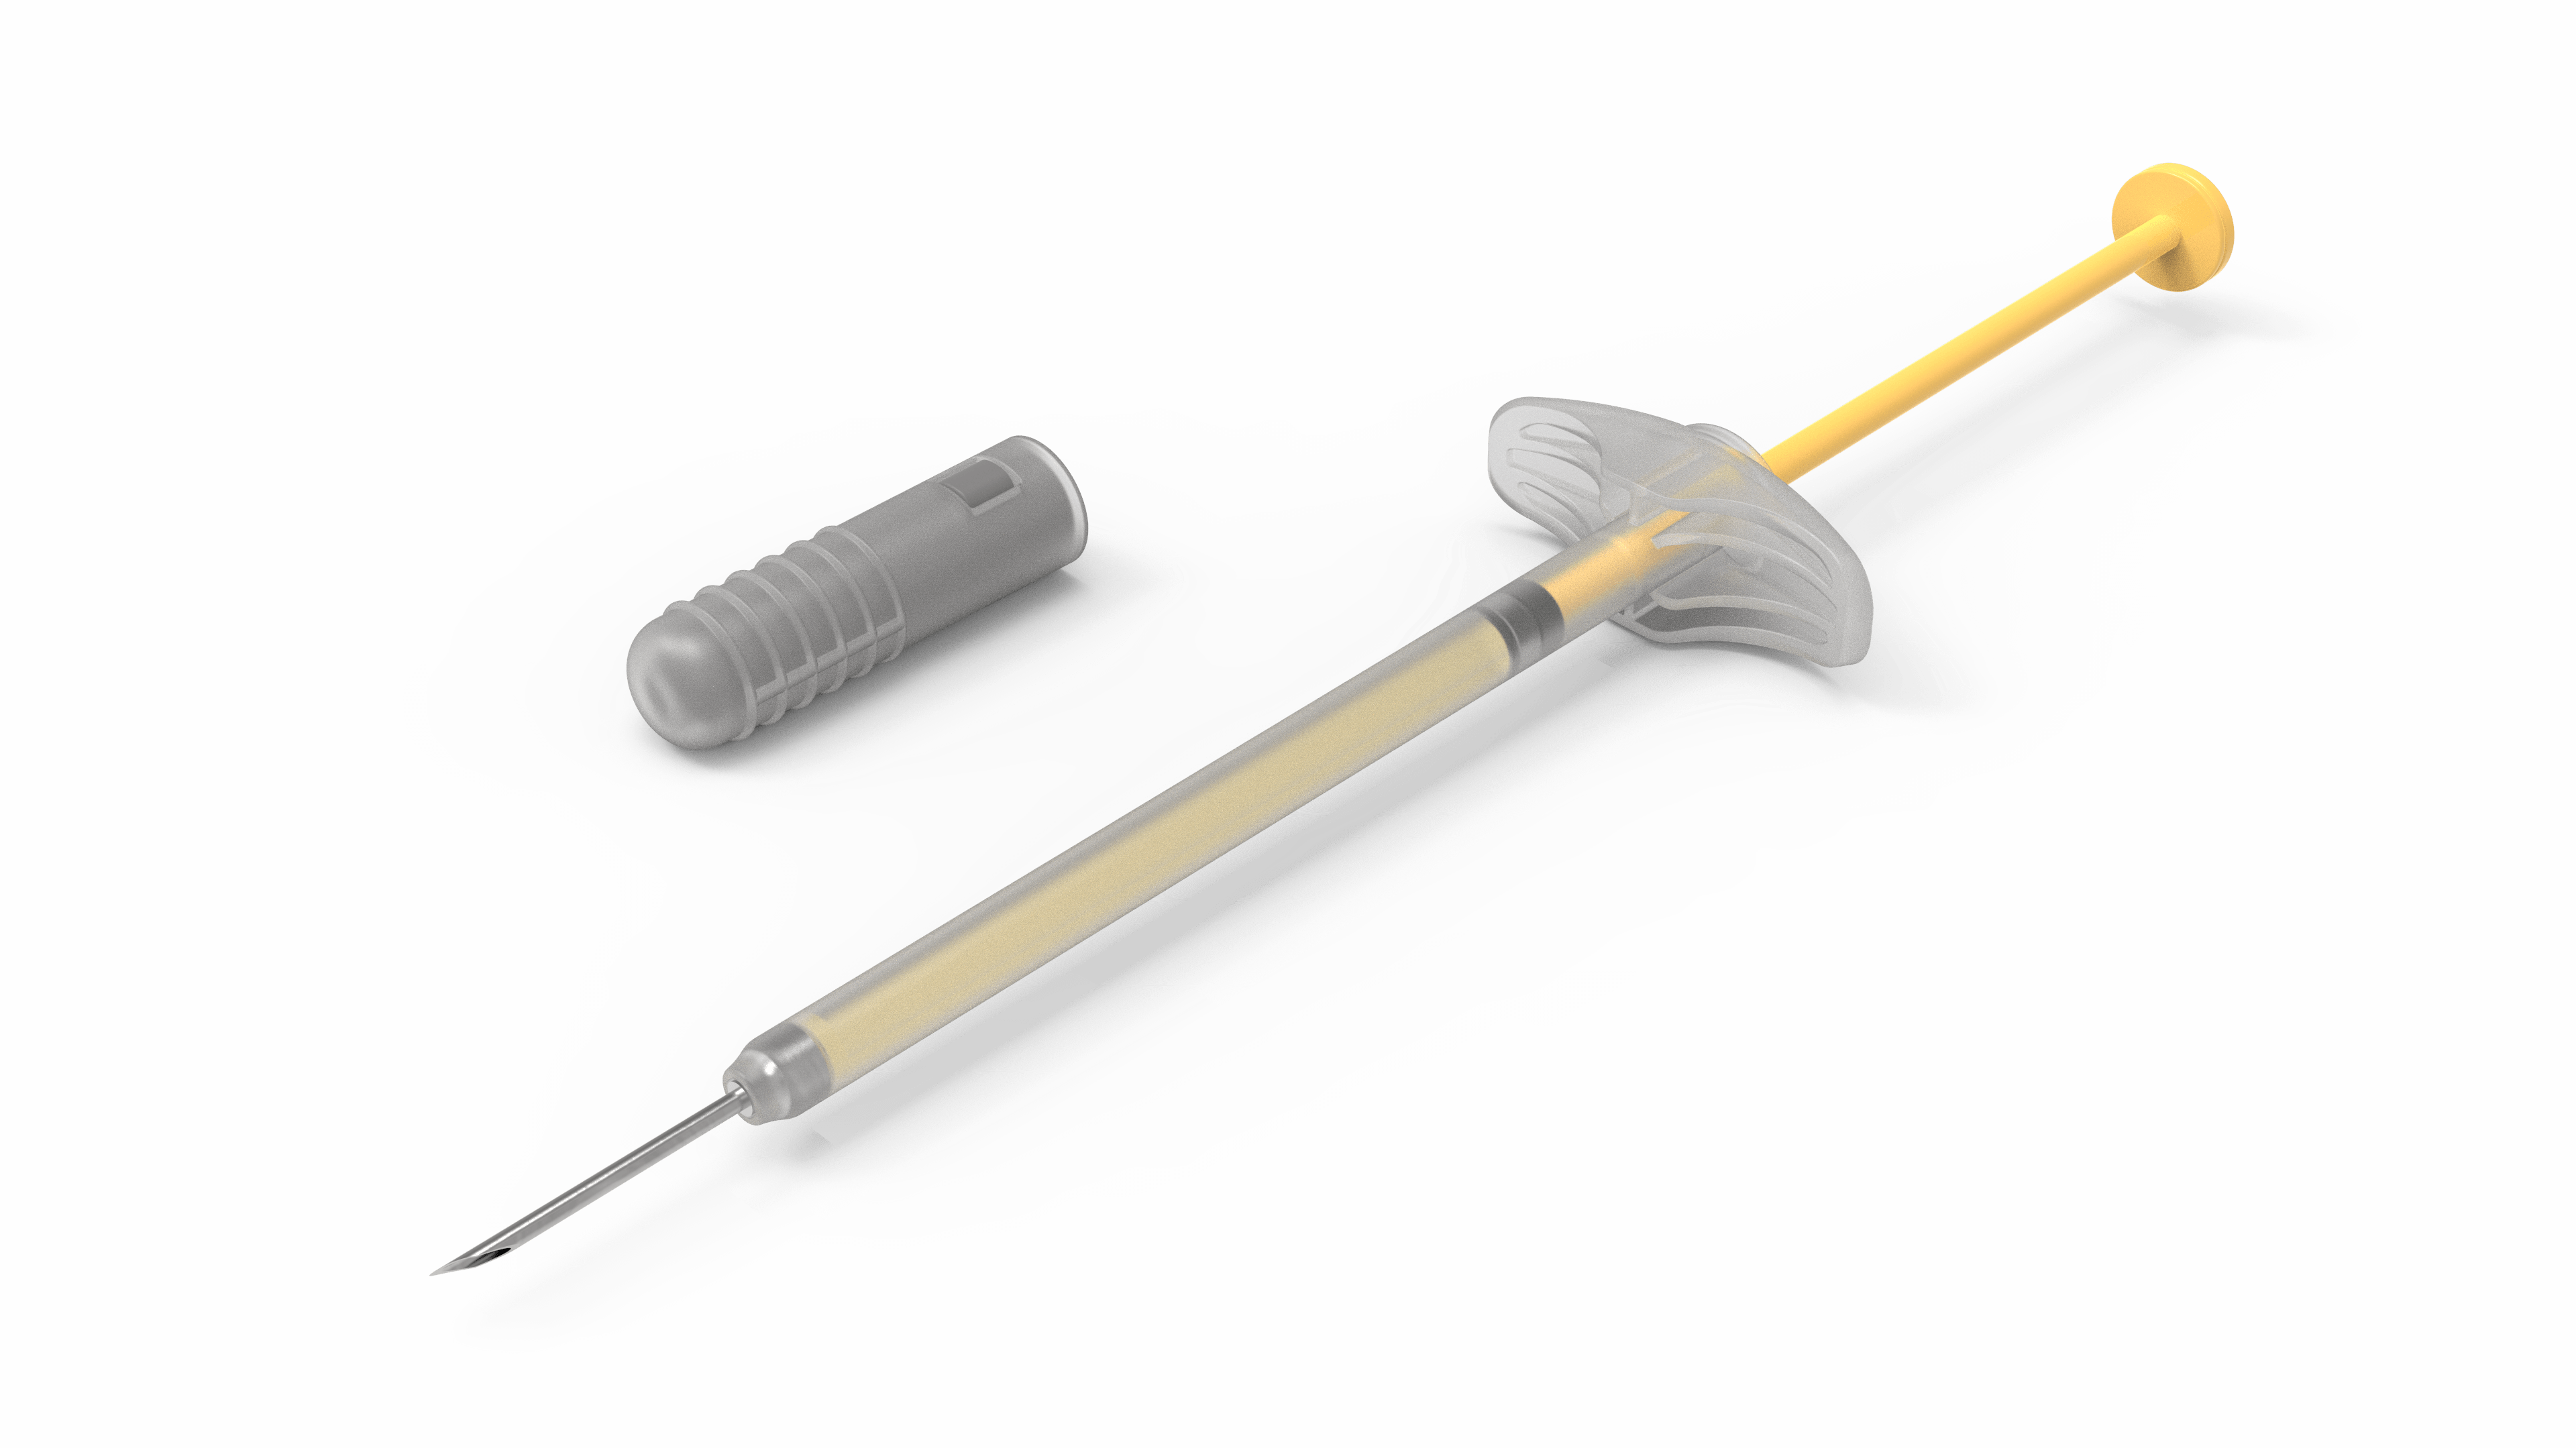 Micro Syringe for viscous drugs